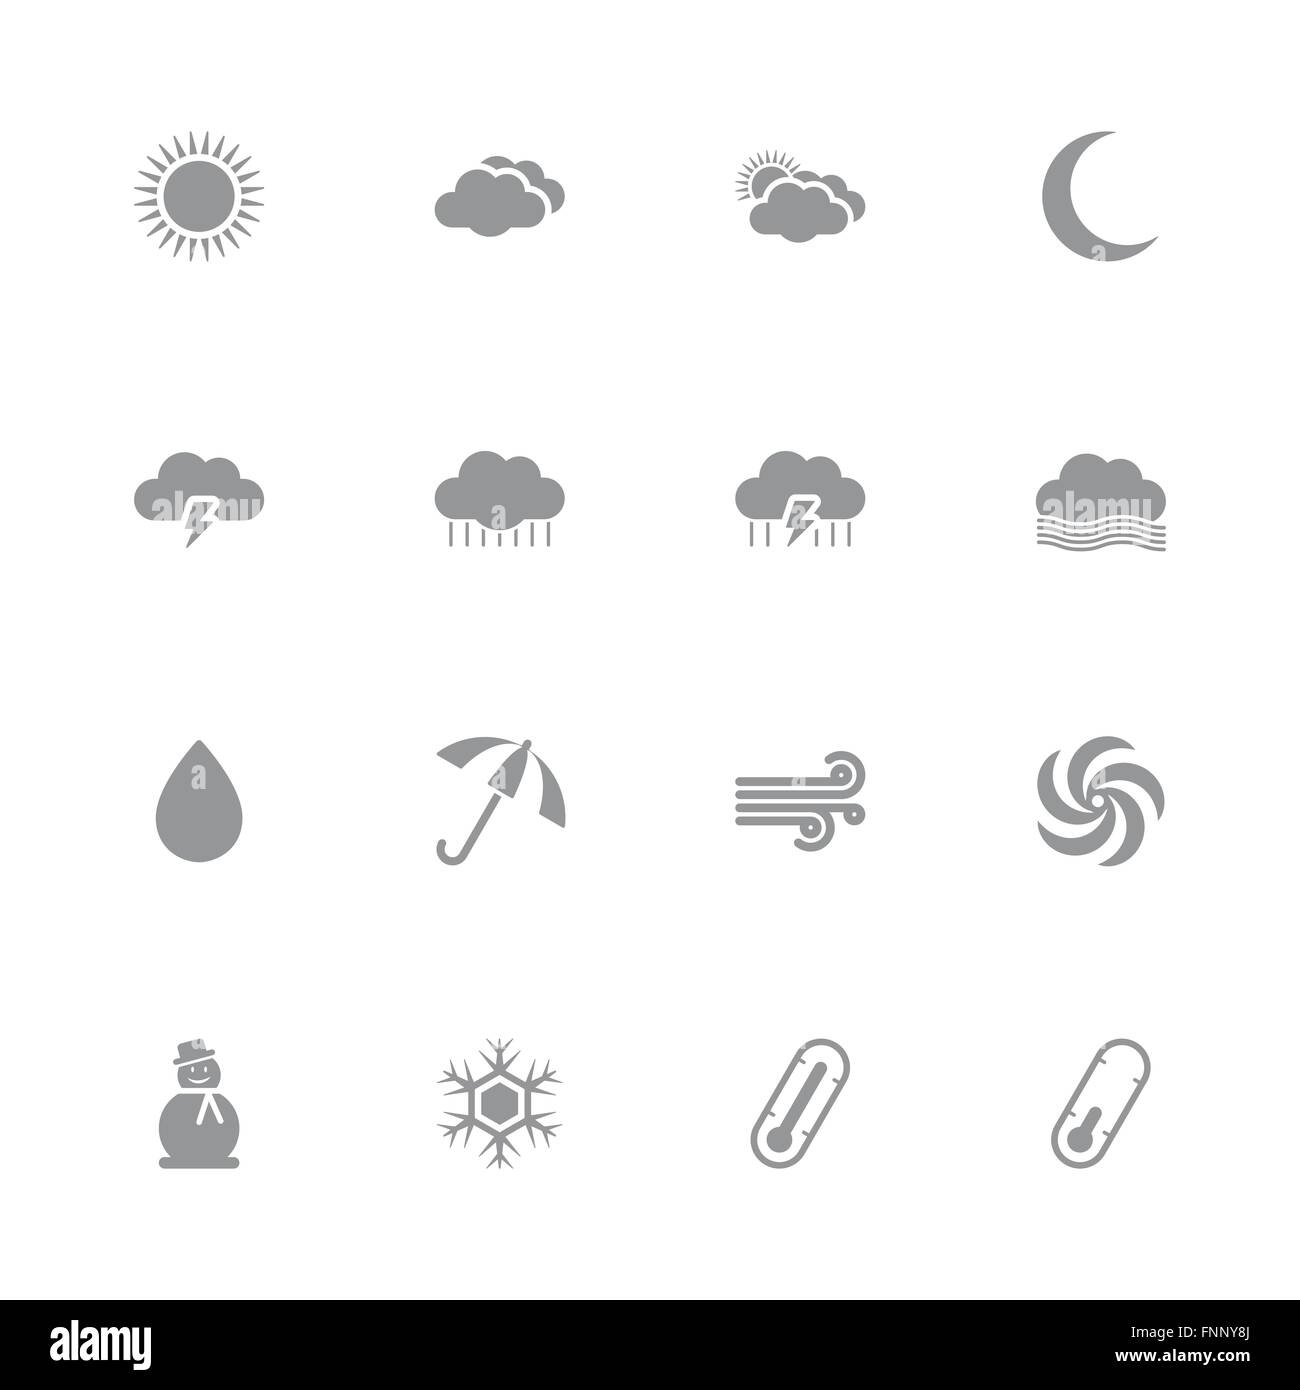 JPEG Gray Simple Flat Weather Icon Set For Web Design User Interface